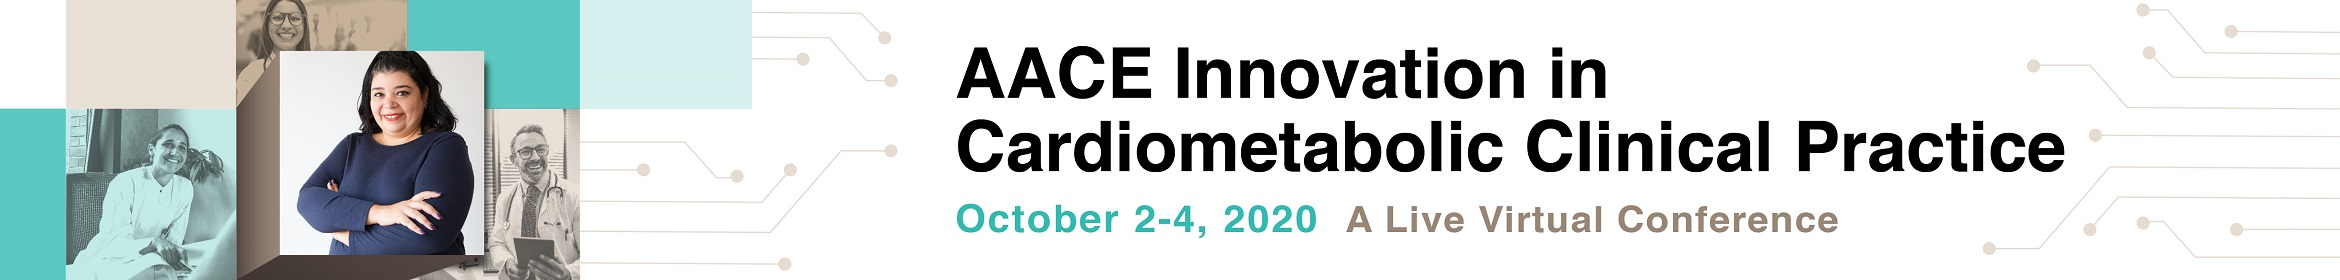 AACE Innovation in Cardiometabolic Clinical Practice Main banner